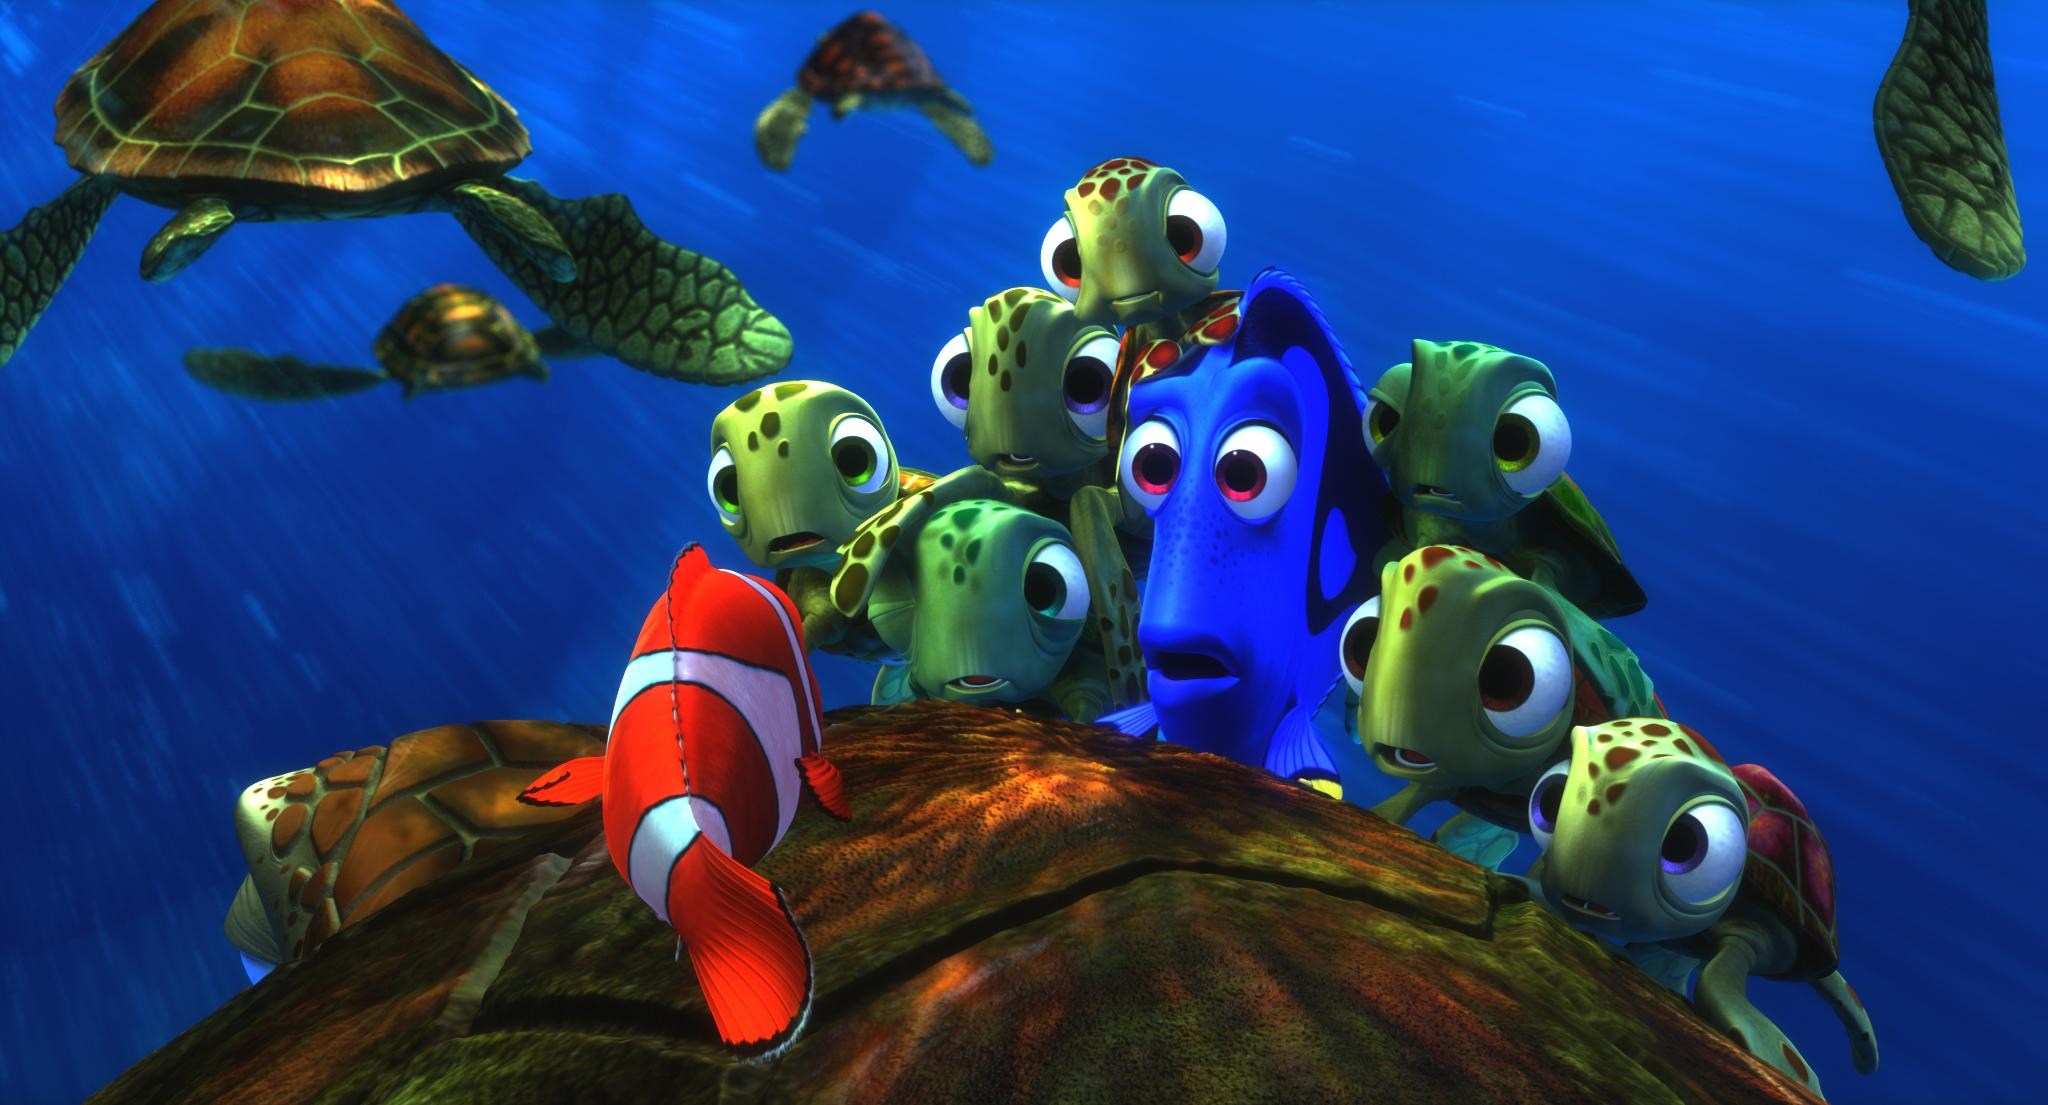 Snarcasm: Well, Someone Has to Hate 'Finding Nemo'